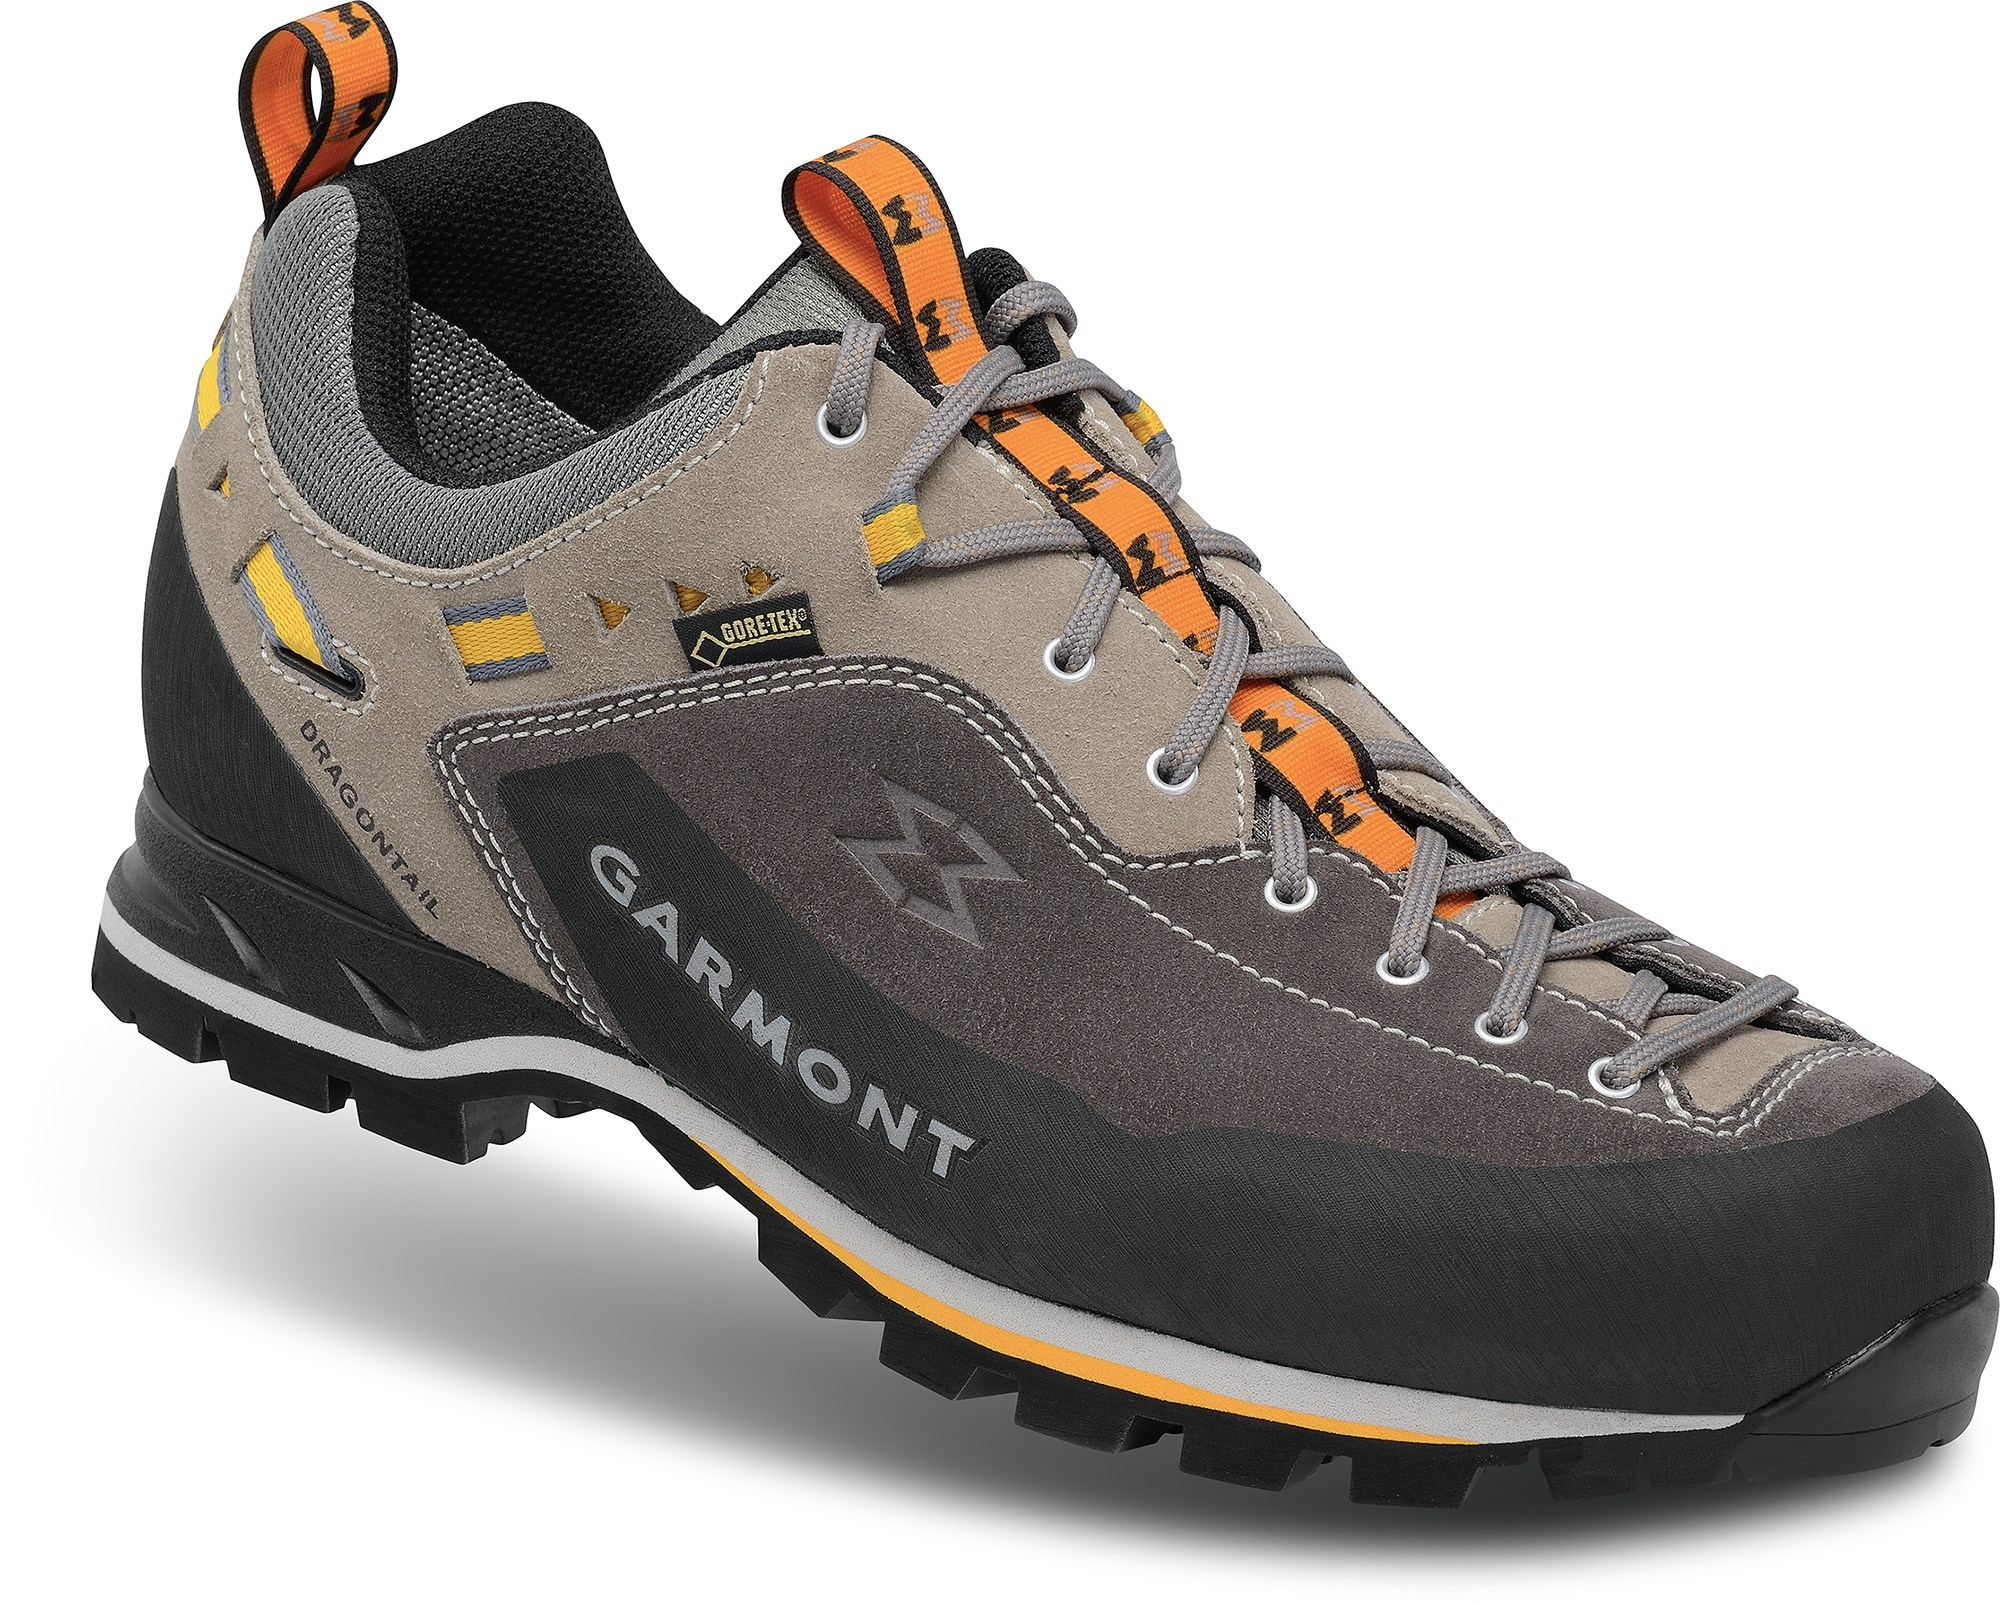 Garmont Dragontail MNT GTX Approach Shoes - Men's